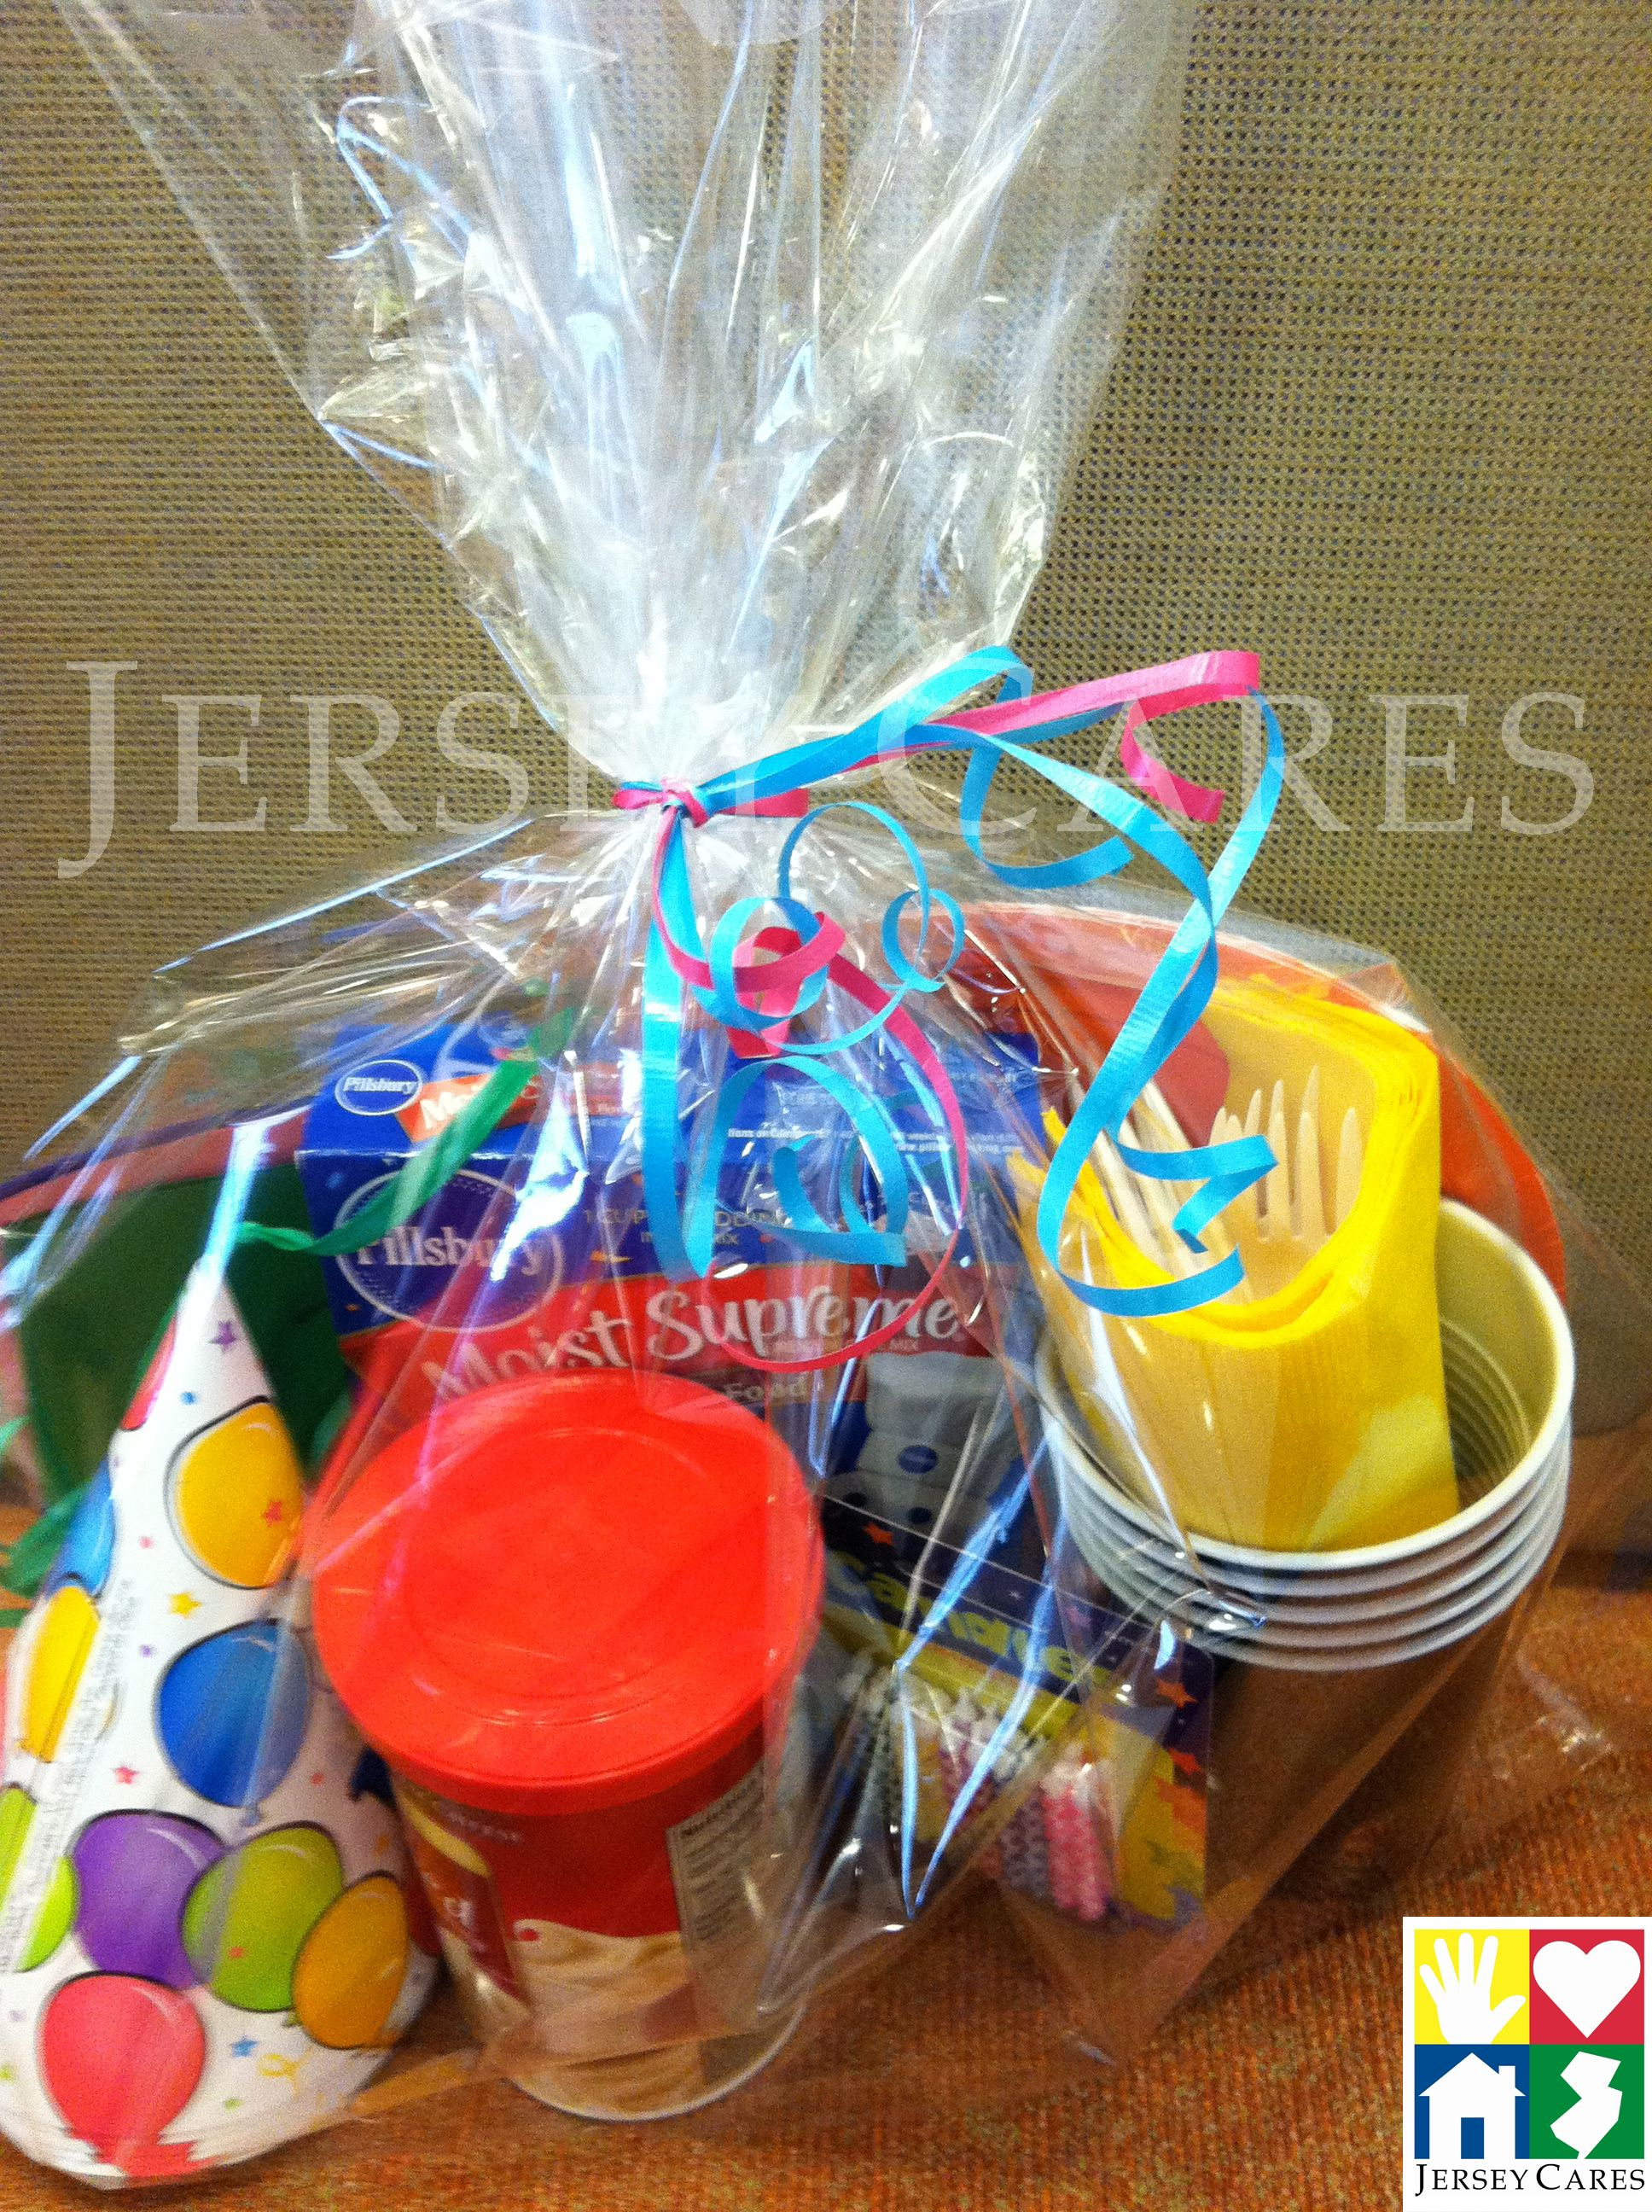 Create Birthday In A Bag Kits For A Local Children S Shelter To